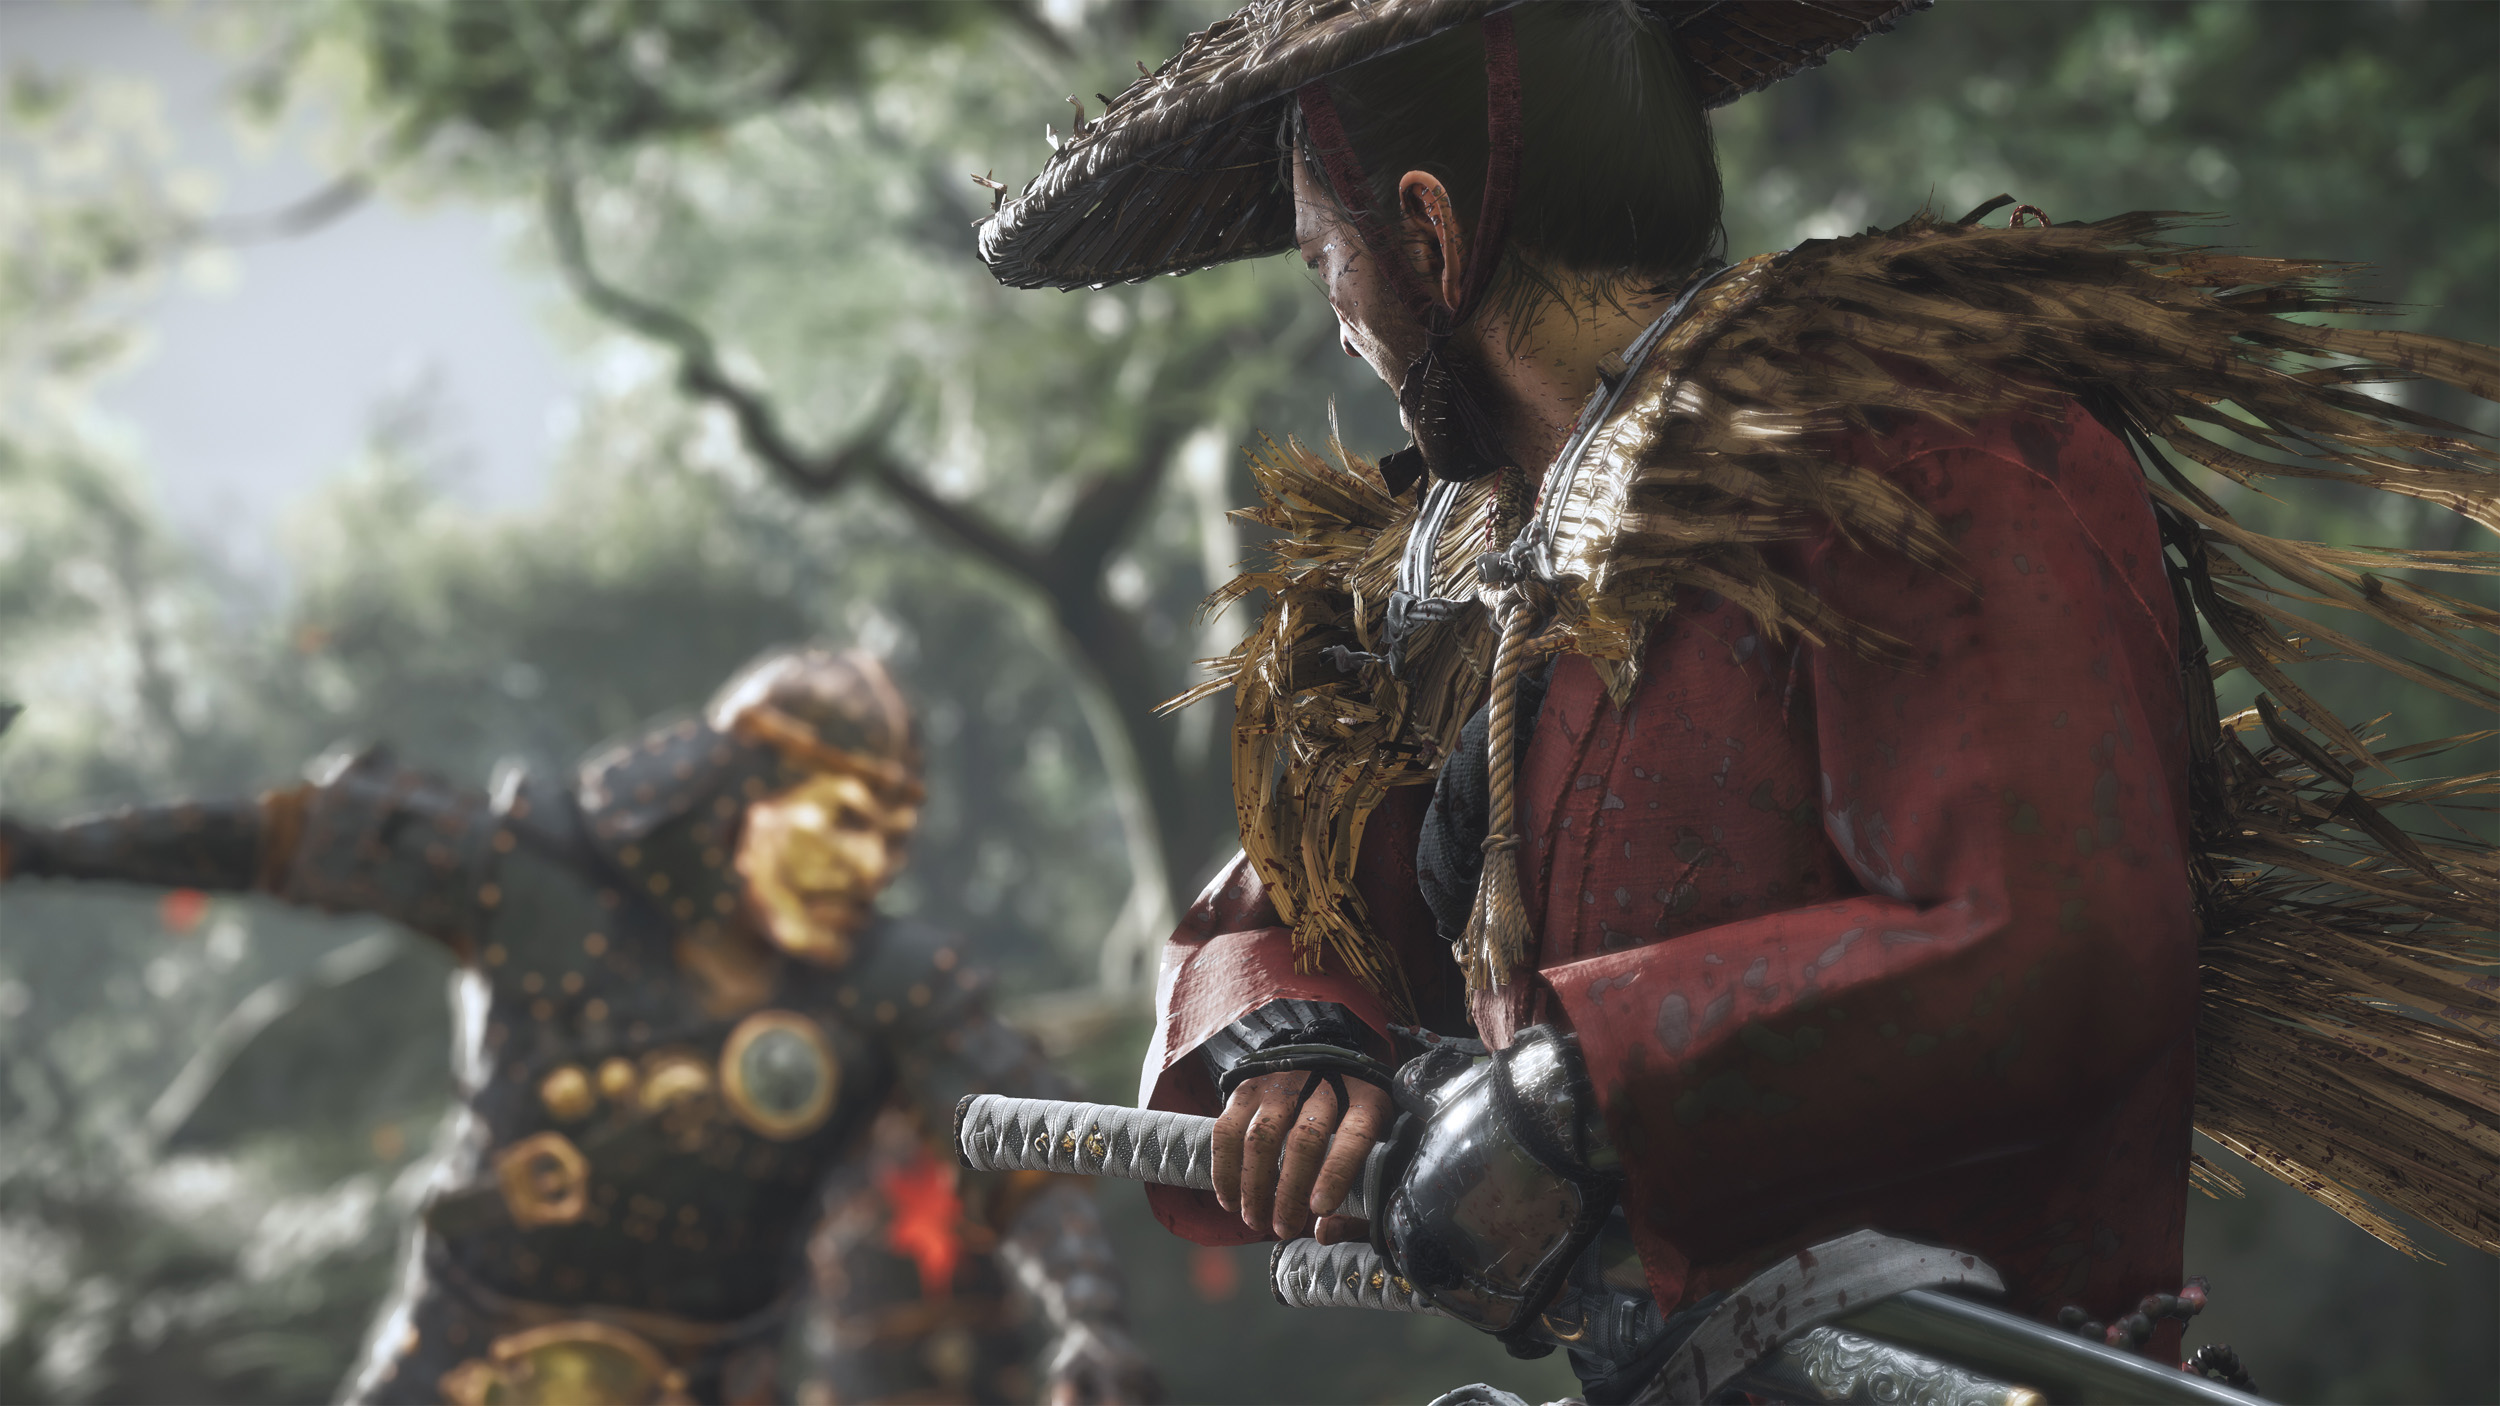 Ghost Of Tsushima – What We Know So Far On Its Release, Story, and Scope On This PlayStation 4 Exclusive